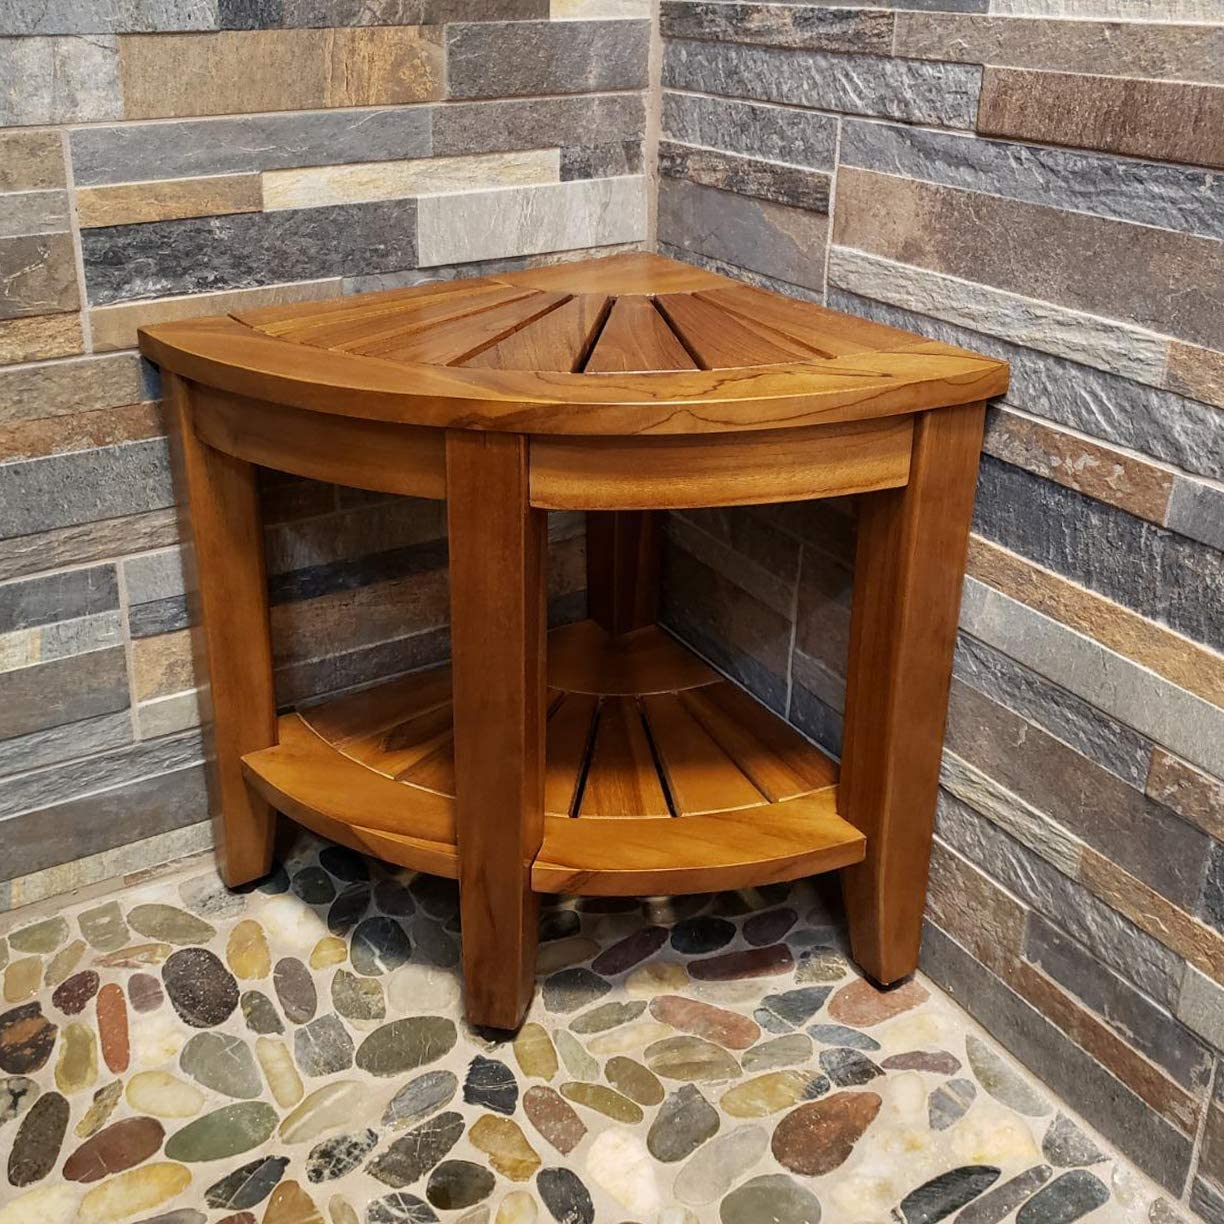 "Teak Shower Bench, Teak Shower Stool, 18"" Teak Wood Bath Spa Shower Stool Corner Bench Stool, All Teak Wood Corner Seat Shower Bench/Stool,Assembly Required 61v47UPuw5LSL1000_"